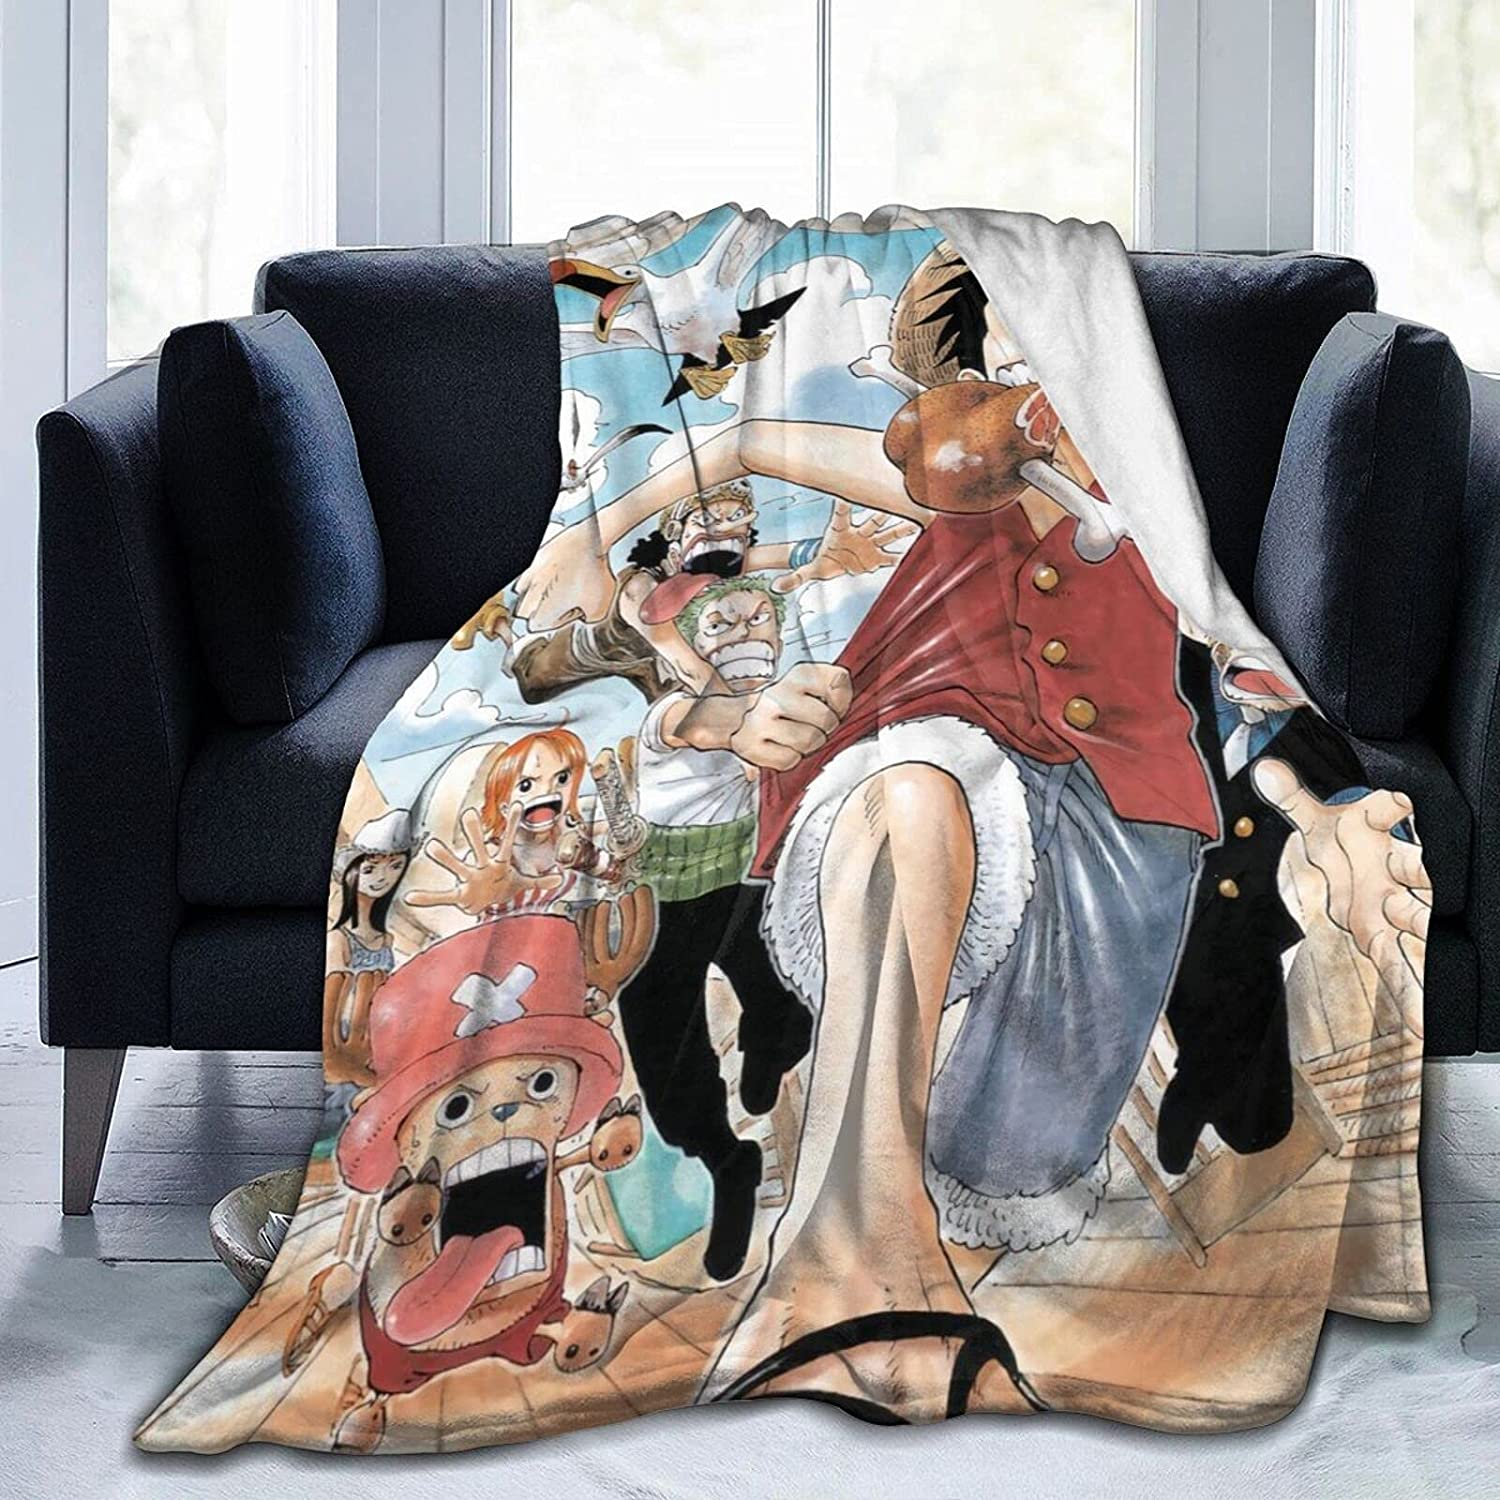 One Piece Flannel Blankets Soft Sofa Cover Ranking TOP6 Bed for Sale special price Blanket Throw